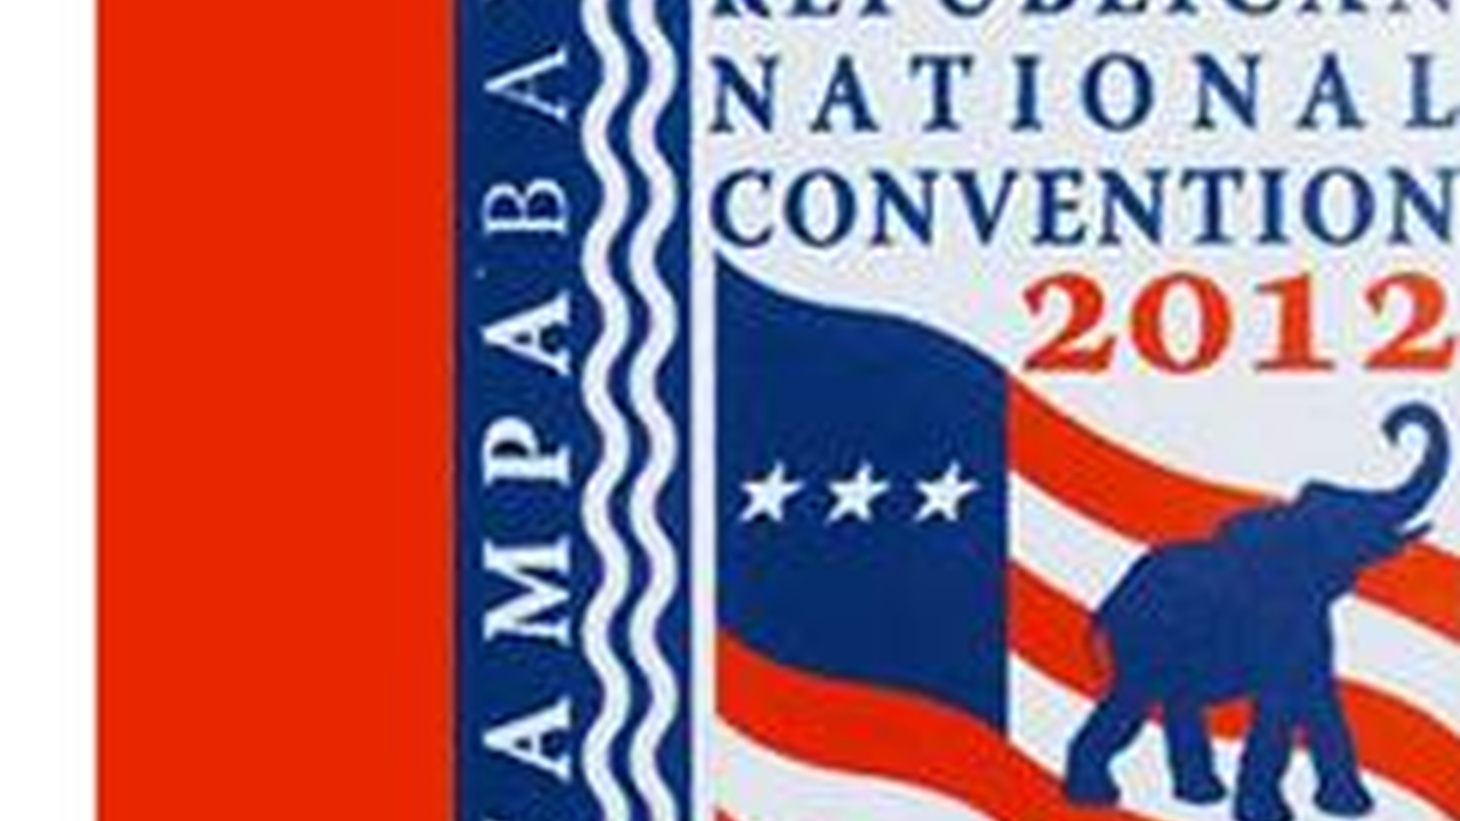 NPR presents special live coverage of the Republican National Convention, 7-8pm PDT